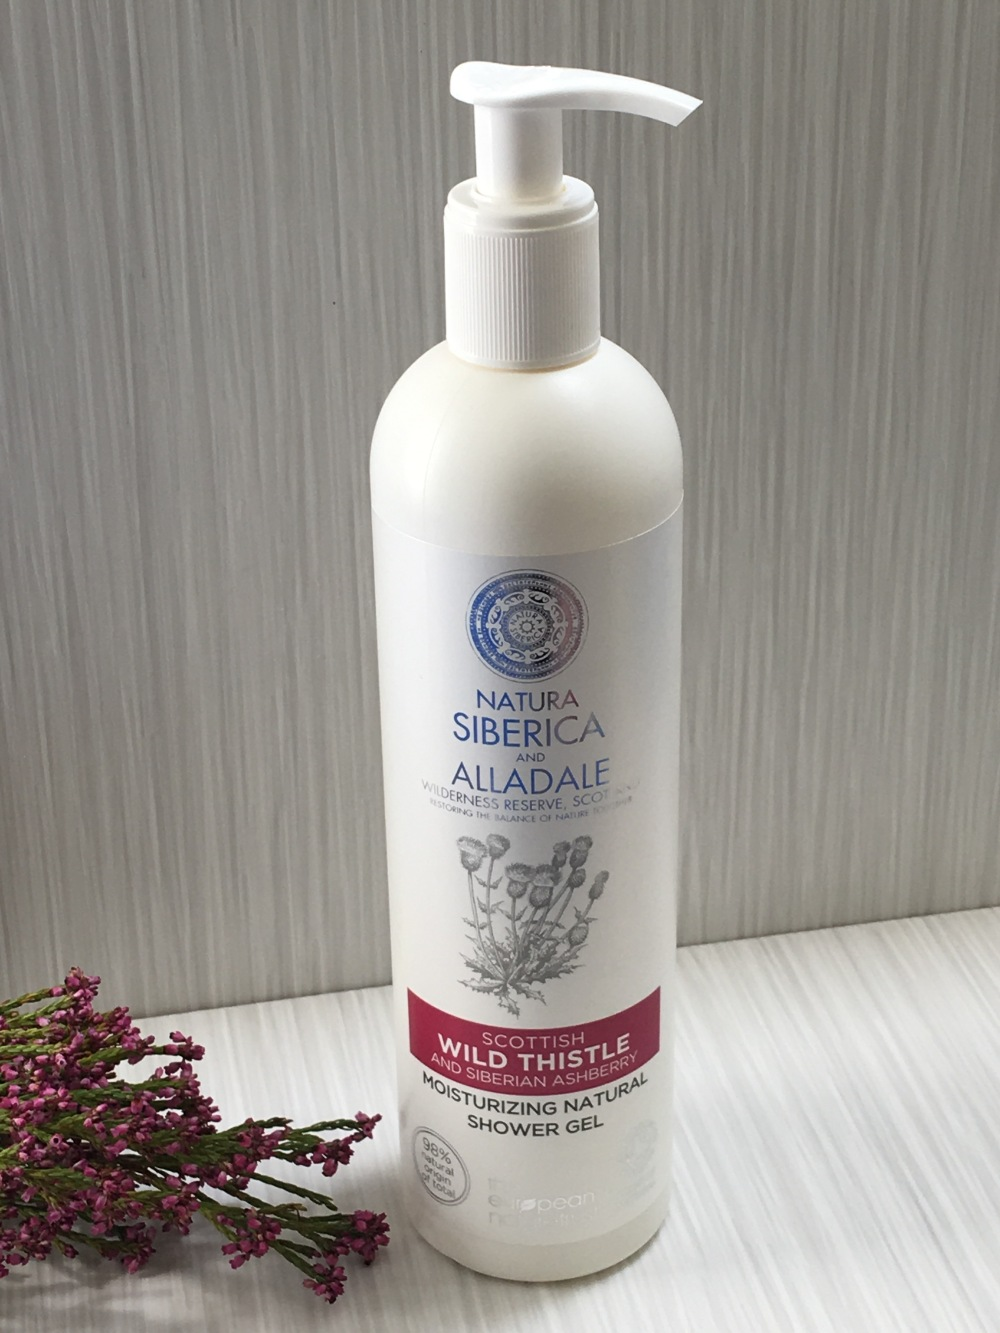 Natura Siberica and Alladale Moisturizing Natural Shower Gel